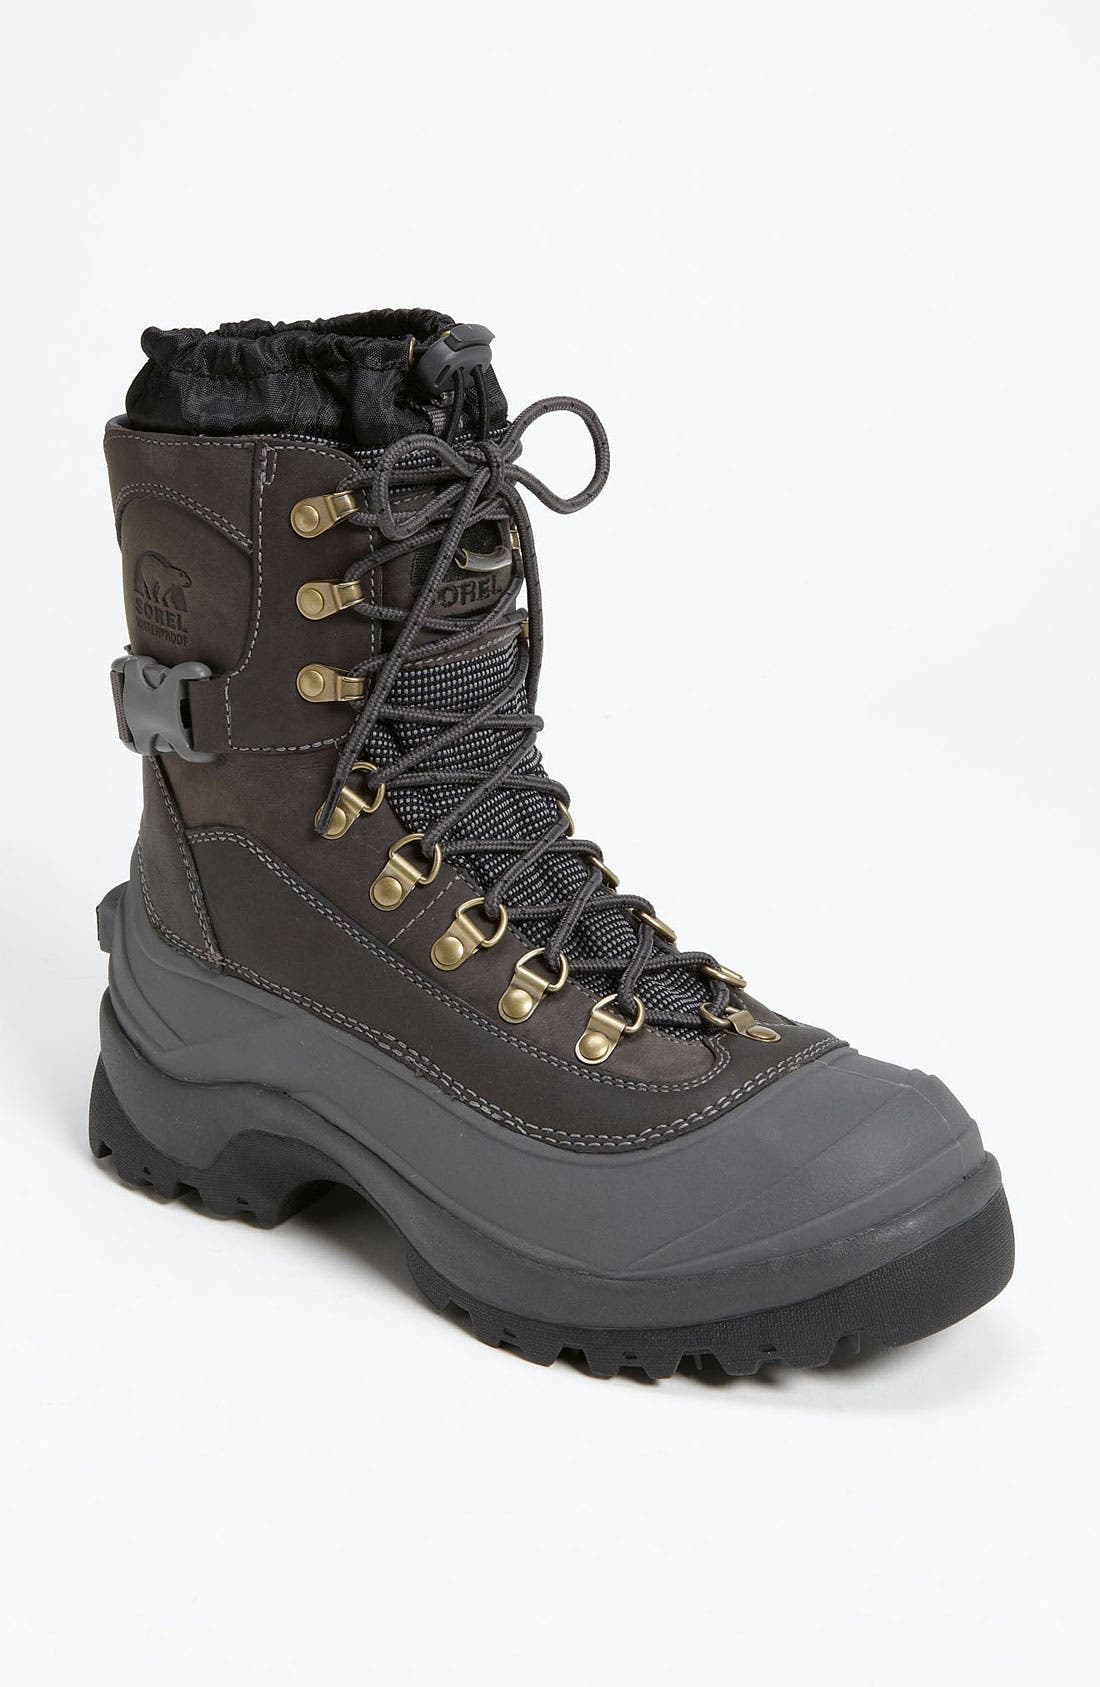 Alternate Image 1 Selected - Sorel 'Conquest' Boot (Men)